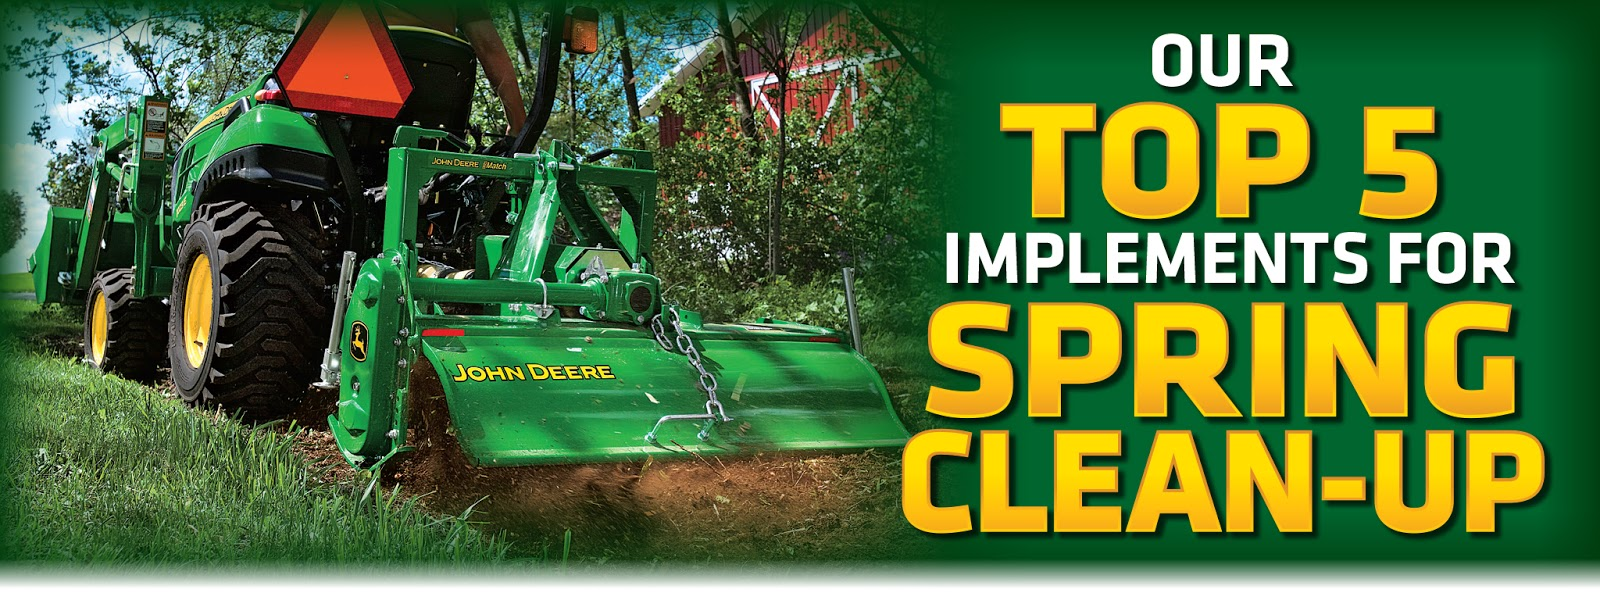 Top 5 Compact Utility Tractor Implements for Spring Yard Clean-Up